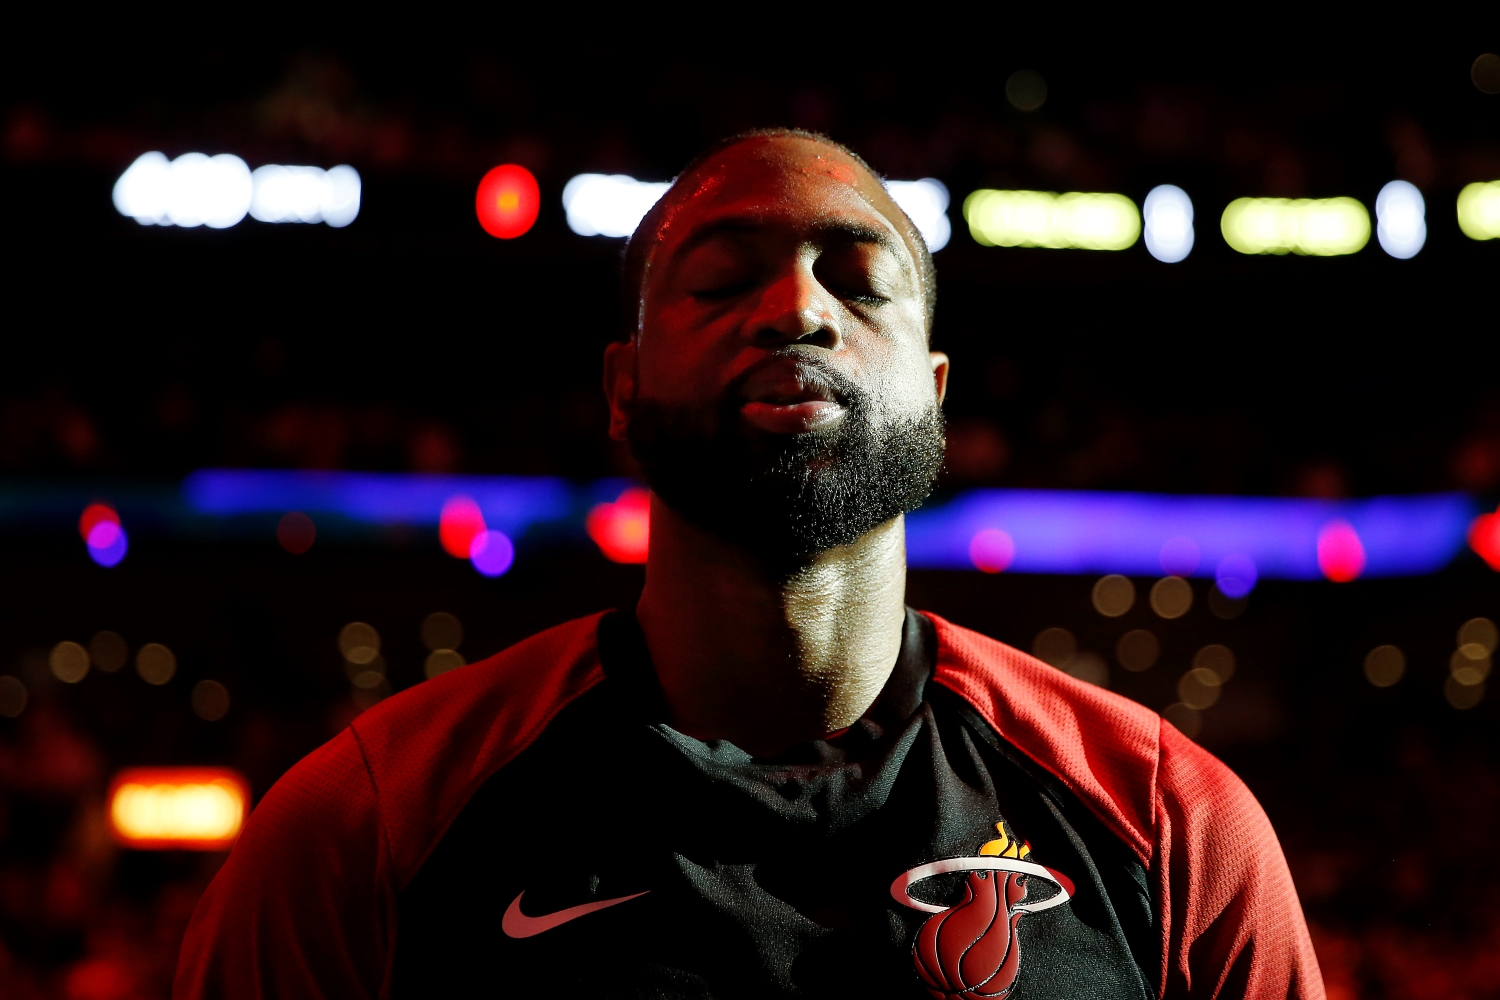 Dwyane Wade of the Miami Heat looks on during the playing of the national anthem prior to an NBA game.